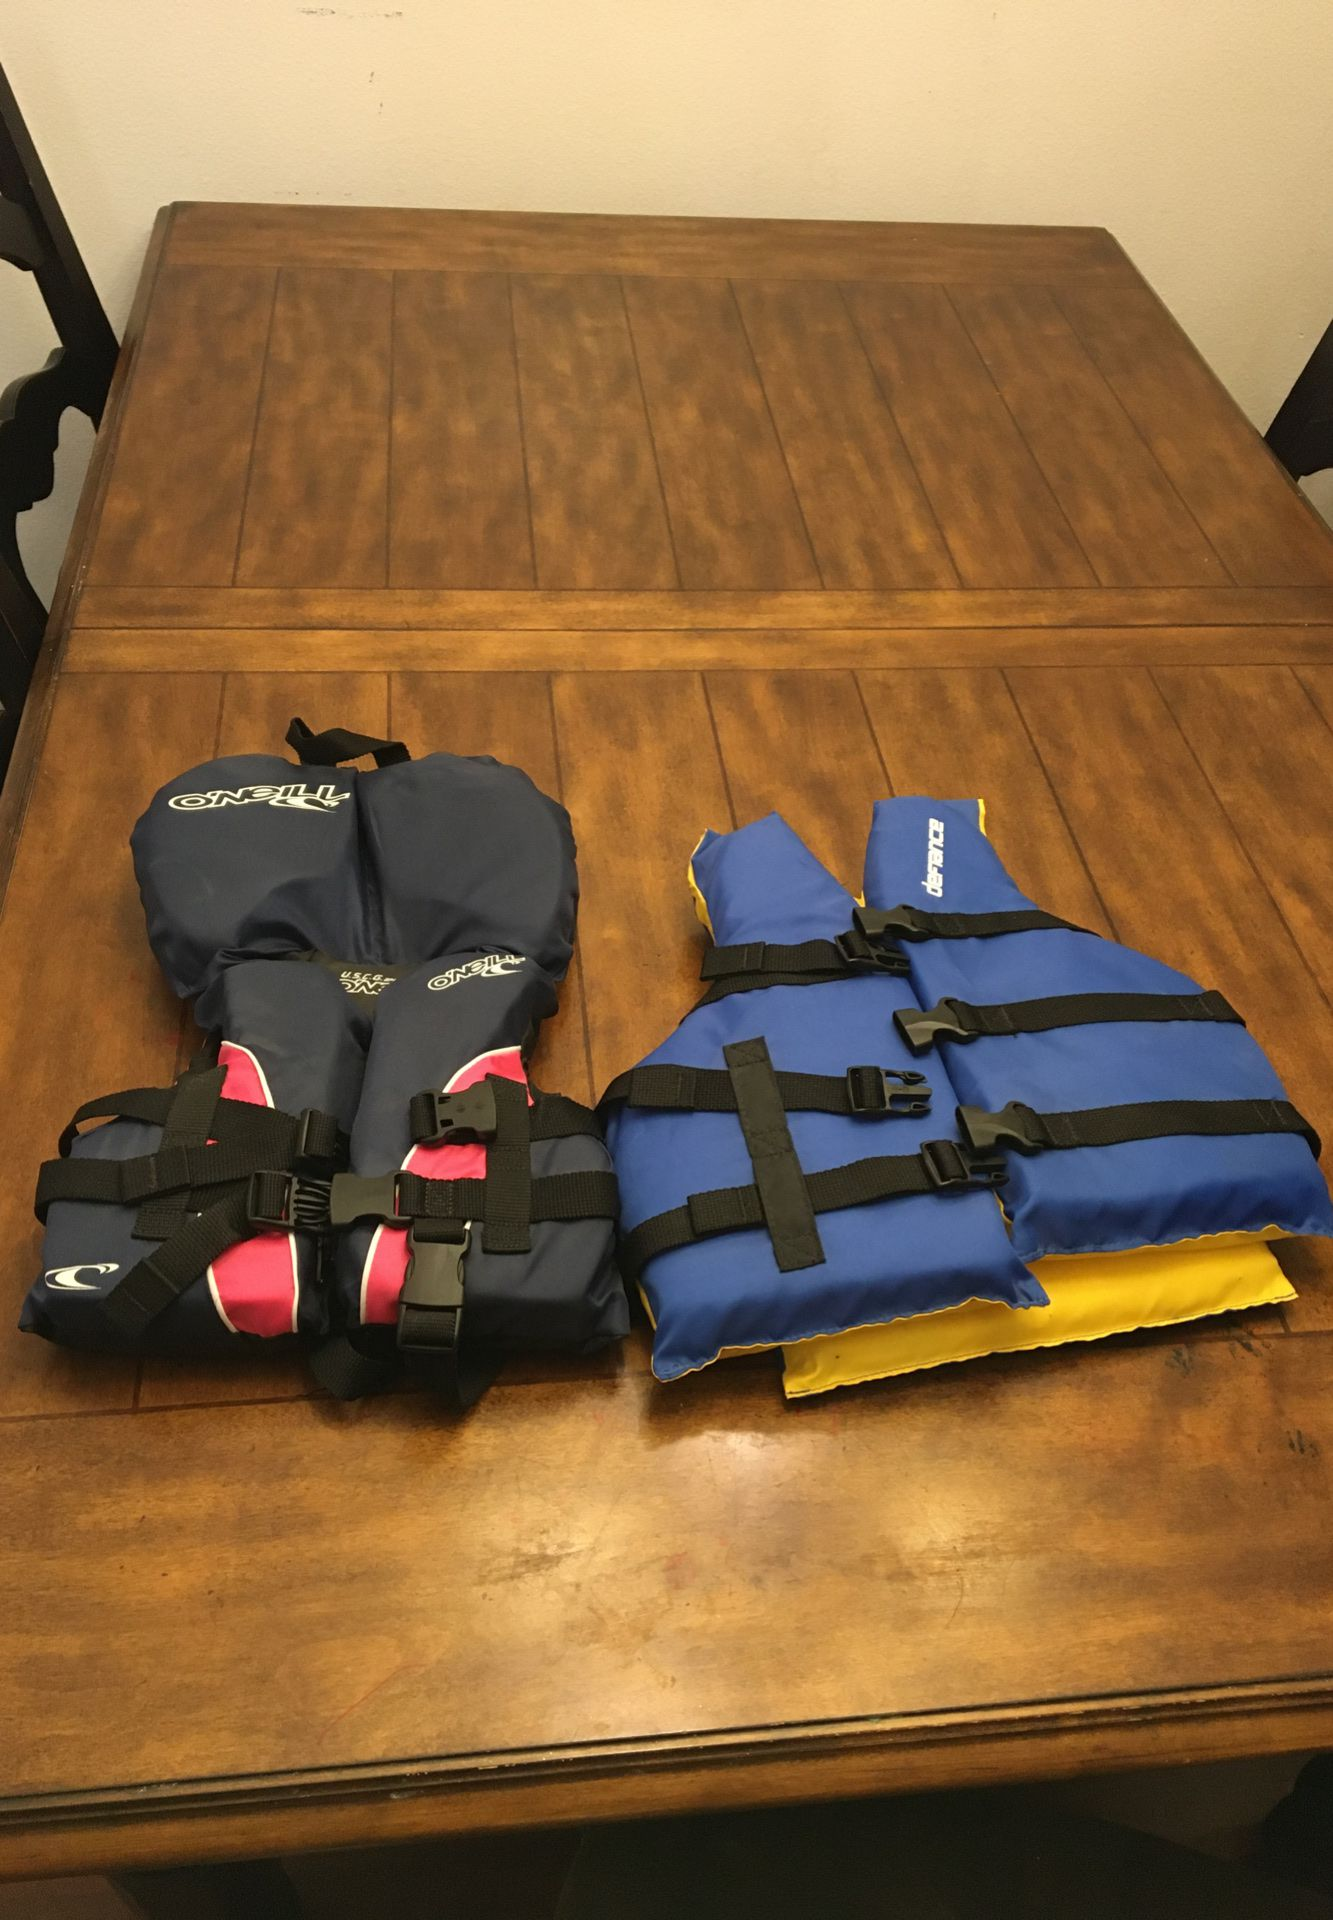 Two youth life vest